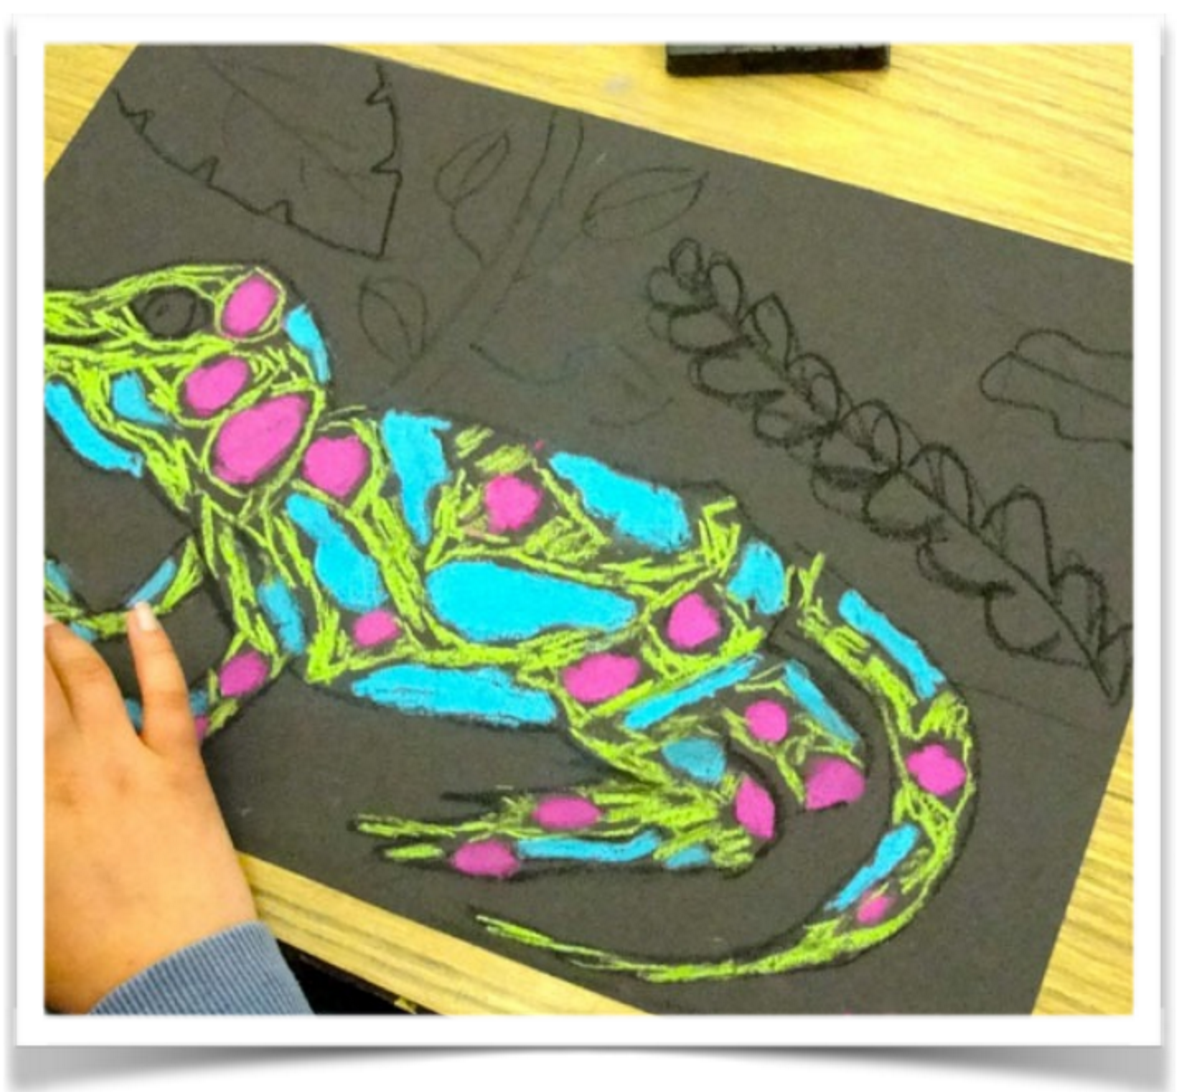 Drawn rainforest art ks2 But Video really doesn't because